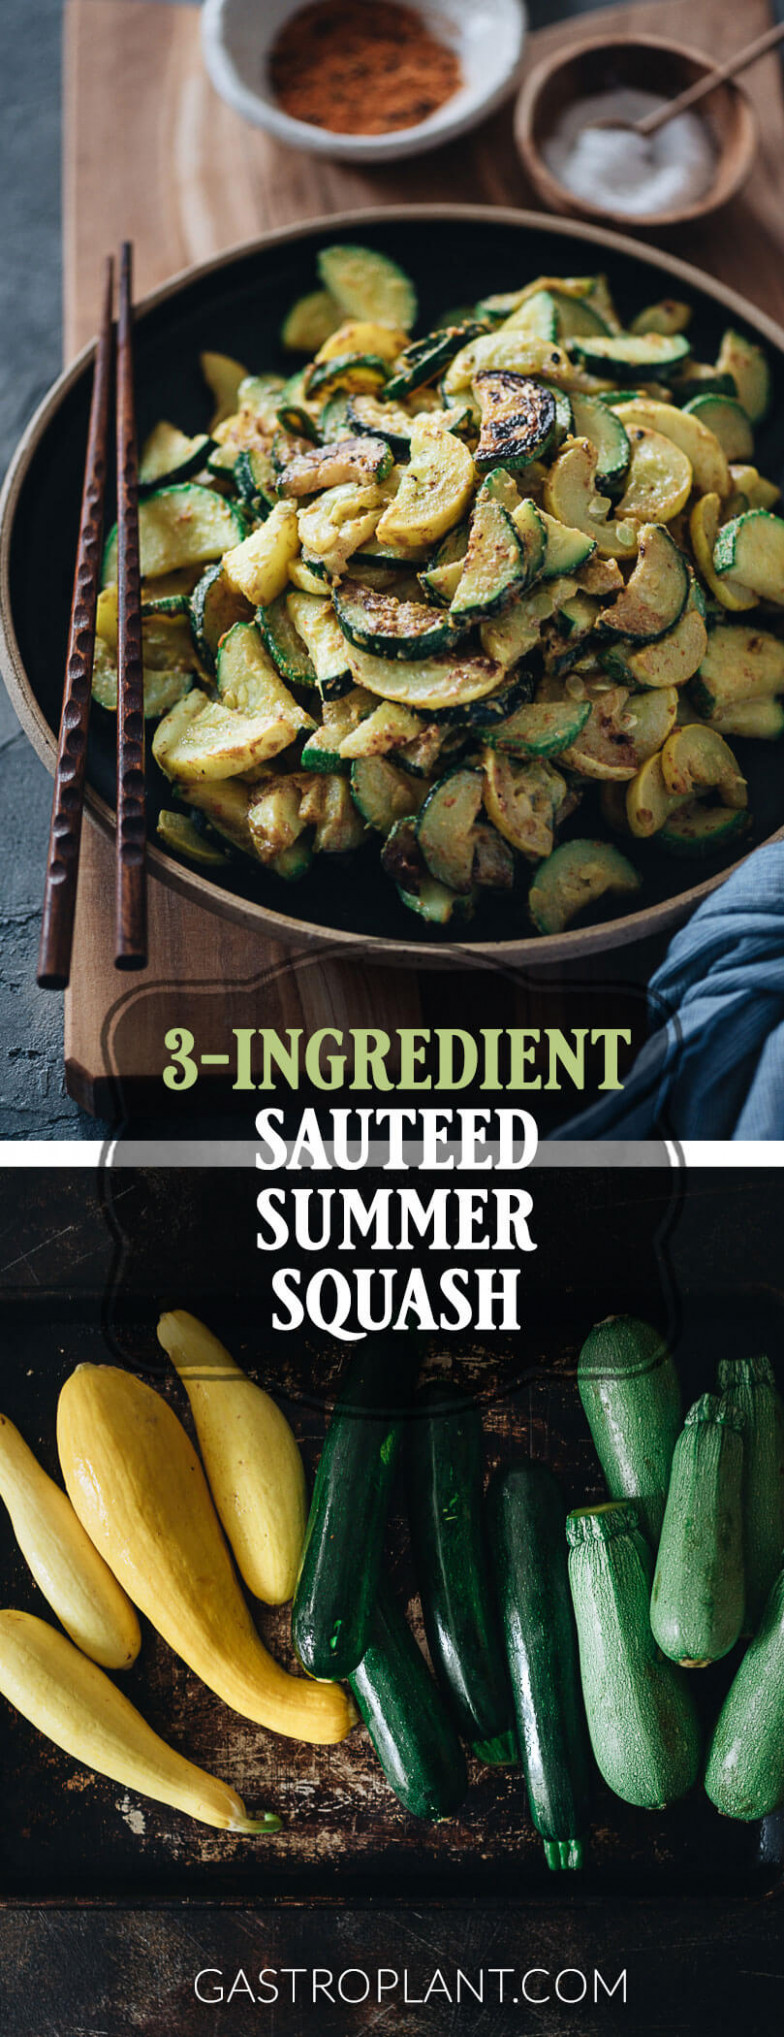 12-Ingredient Sauteed Summer Squash | Gastroplant - healthy yellow squash recipes